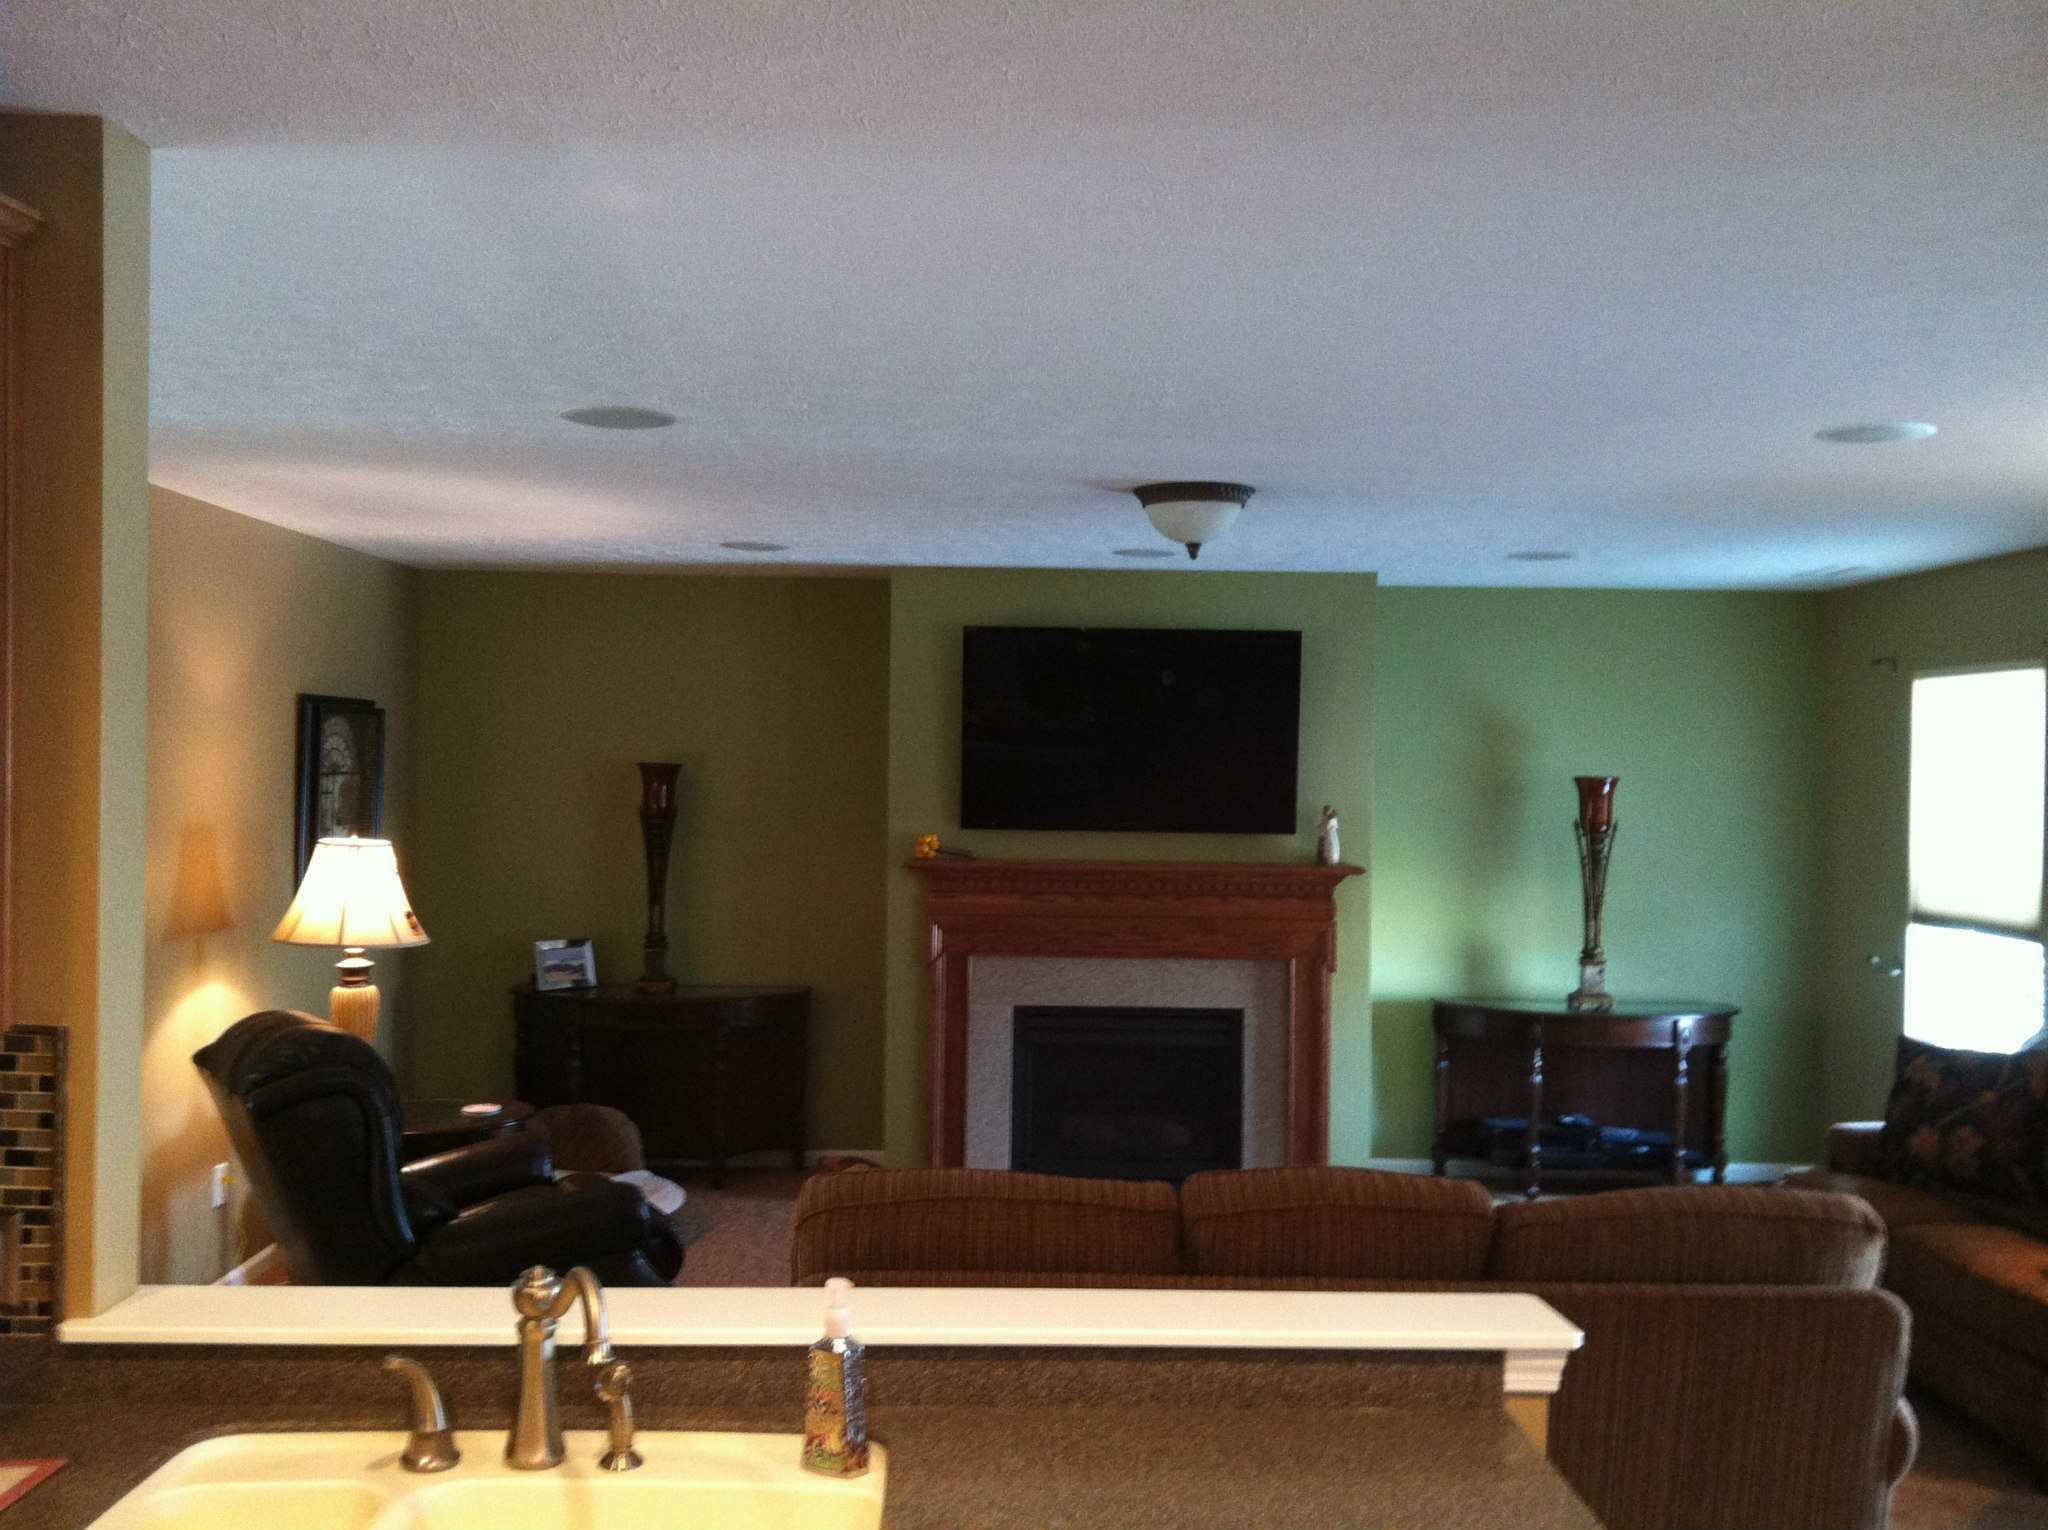 House painting Indianapolis Flora Brothers Painting Painters